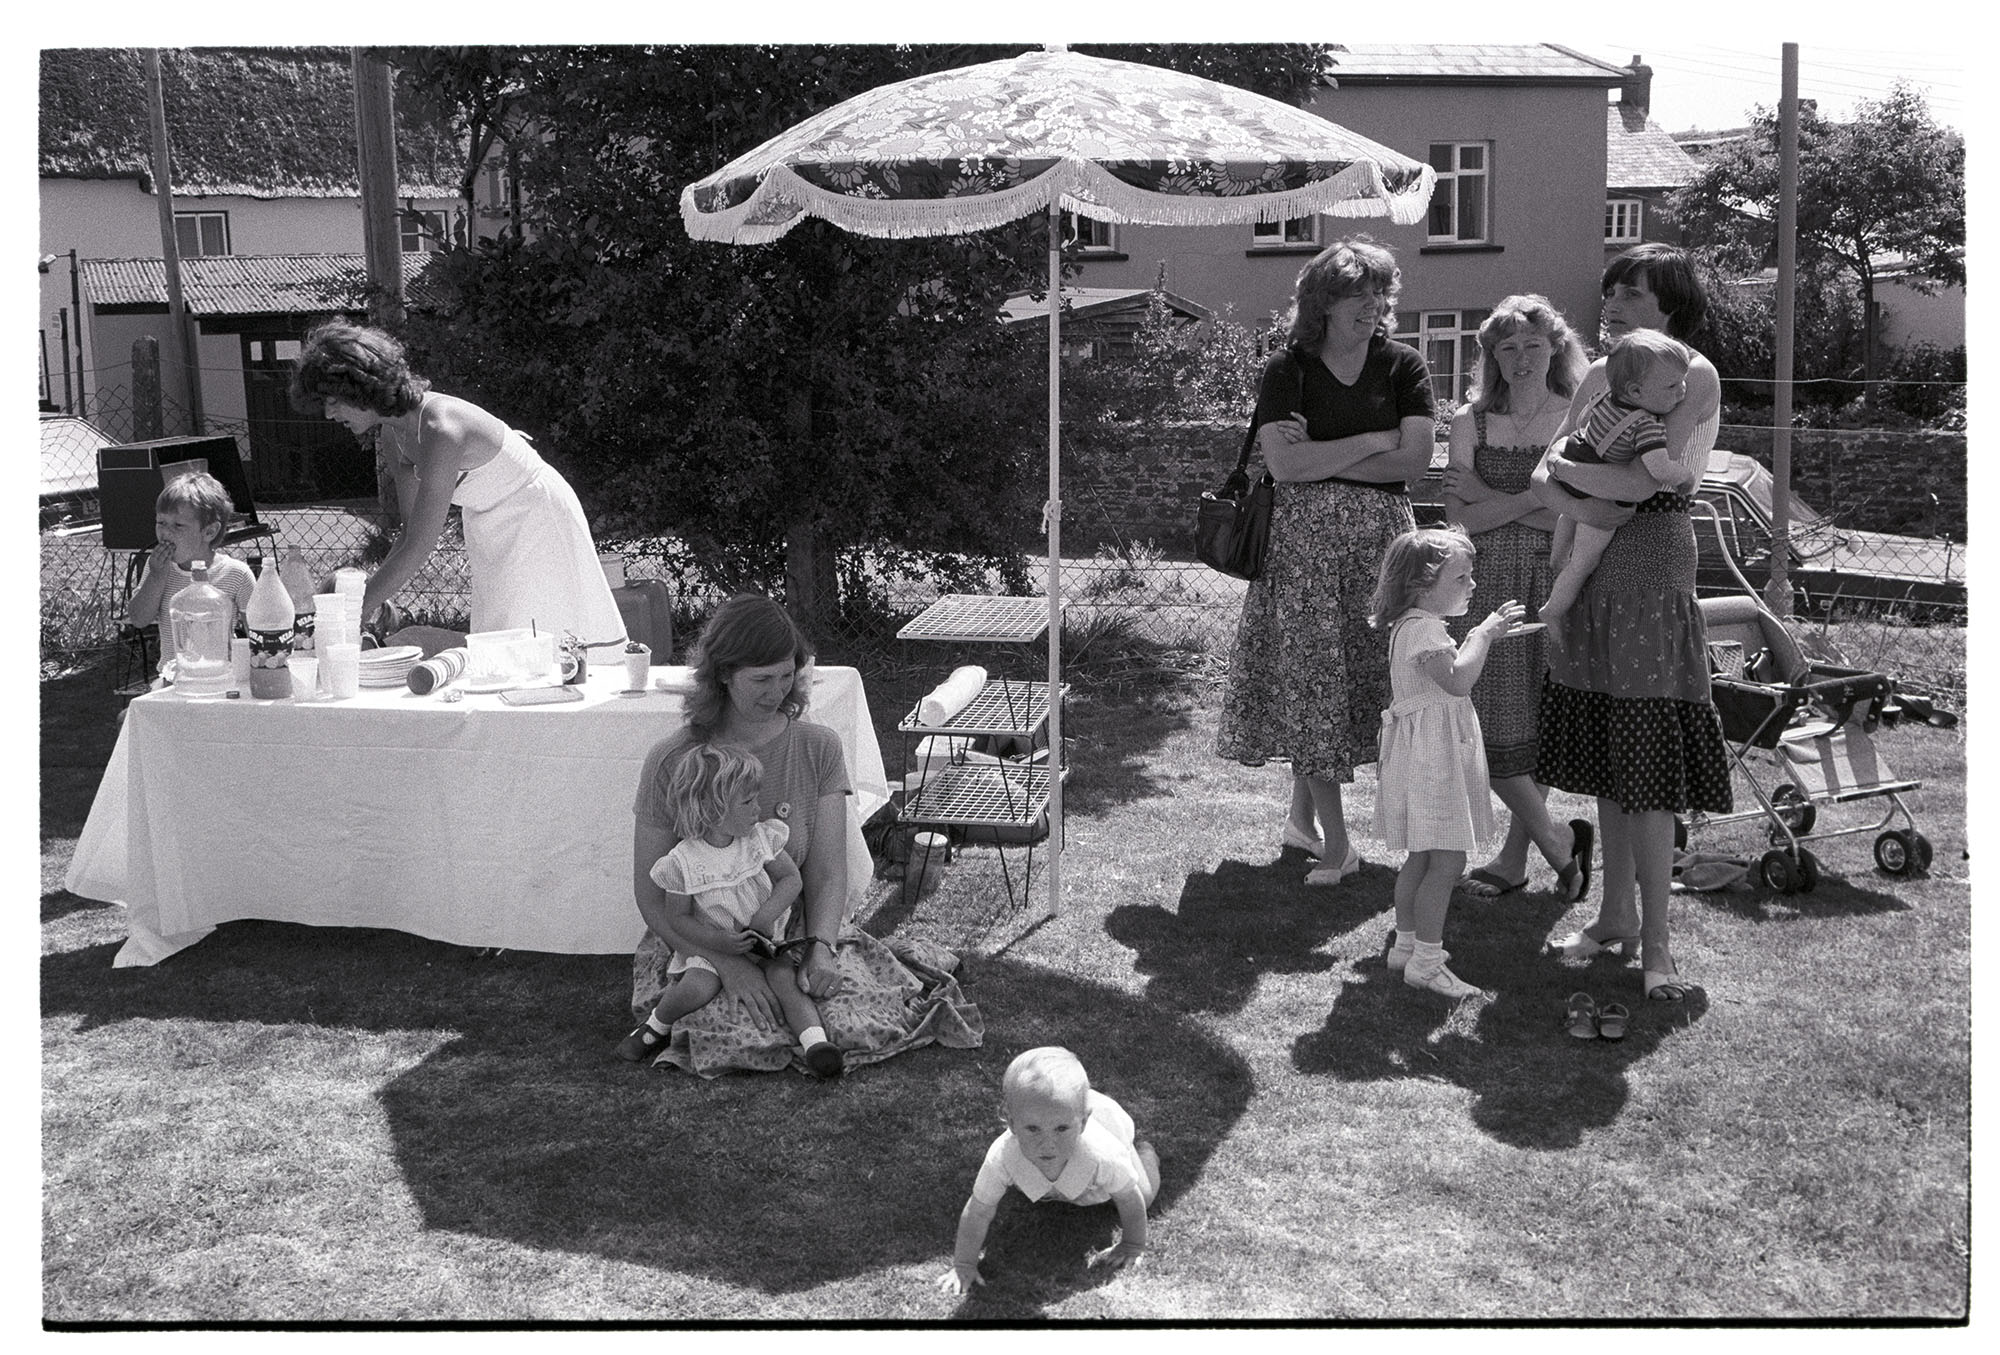 Sports day, women mothers with babies, children chatting and serving refreshments. <br /> [Women and children stood chatting by a refreshment stall and parasol at Dolton Sport Day. Catherine Simmons is sat on the ground with a child and a baby.]